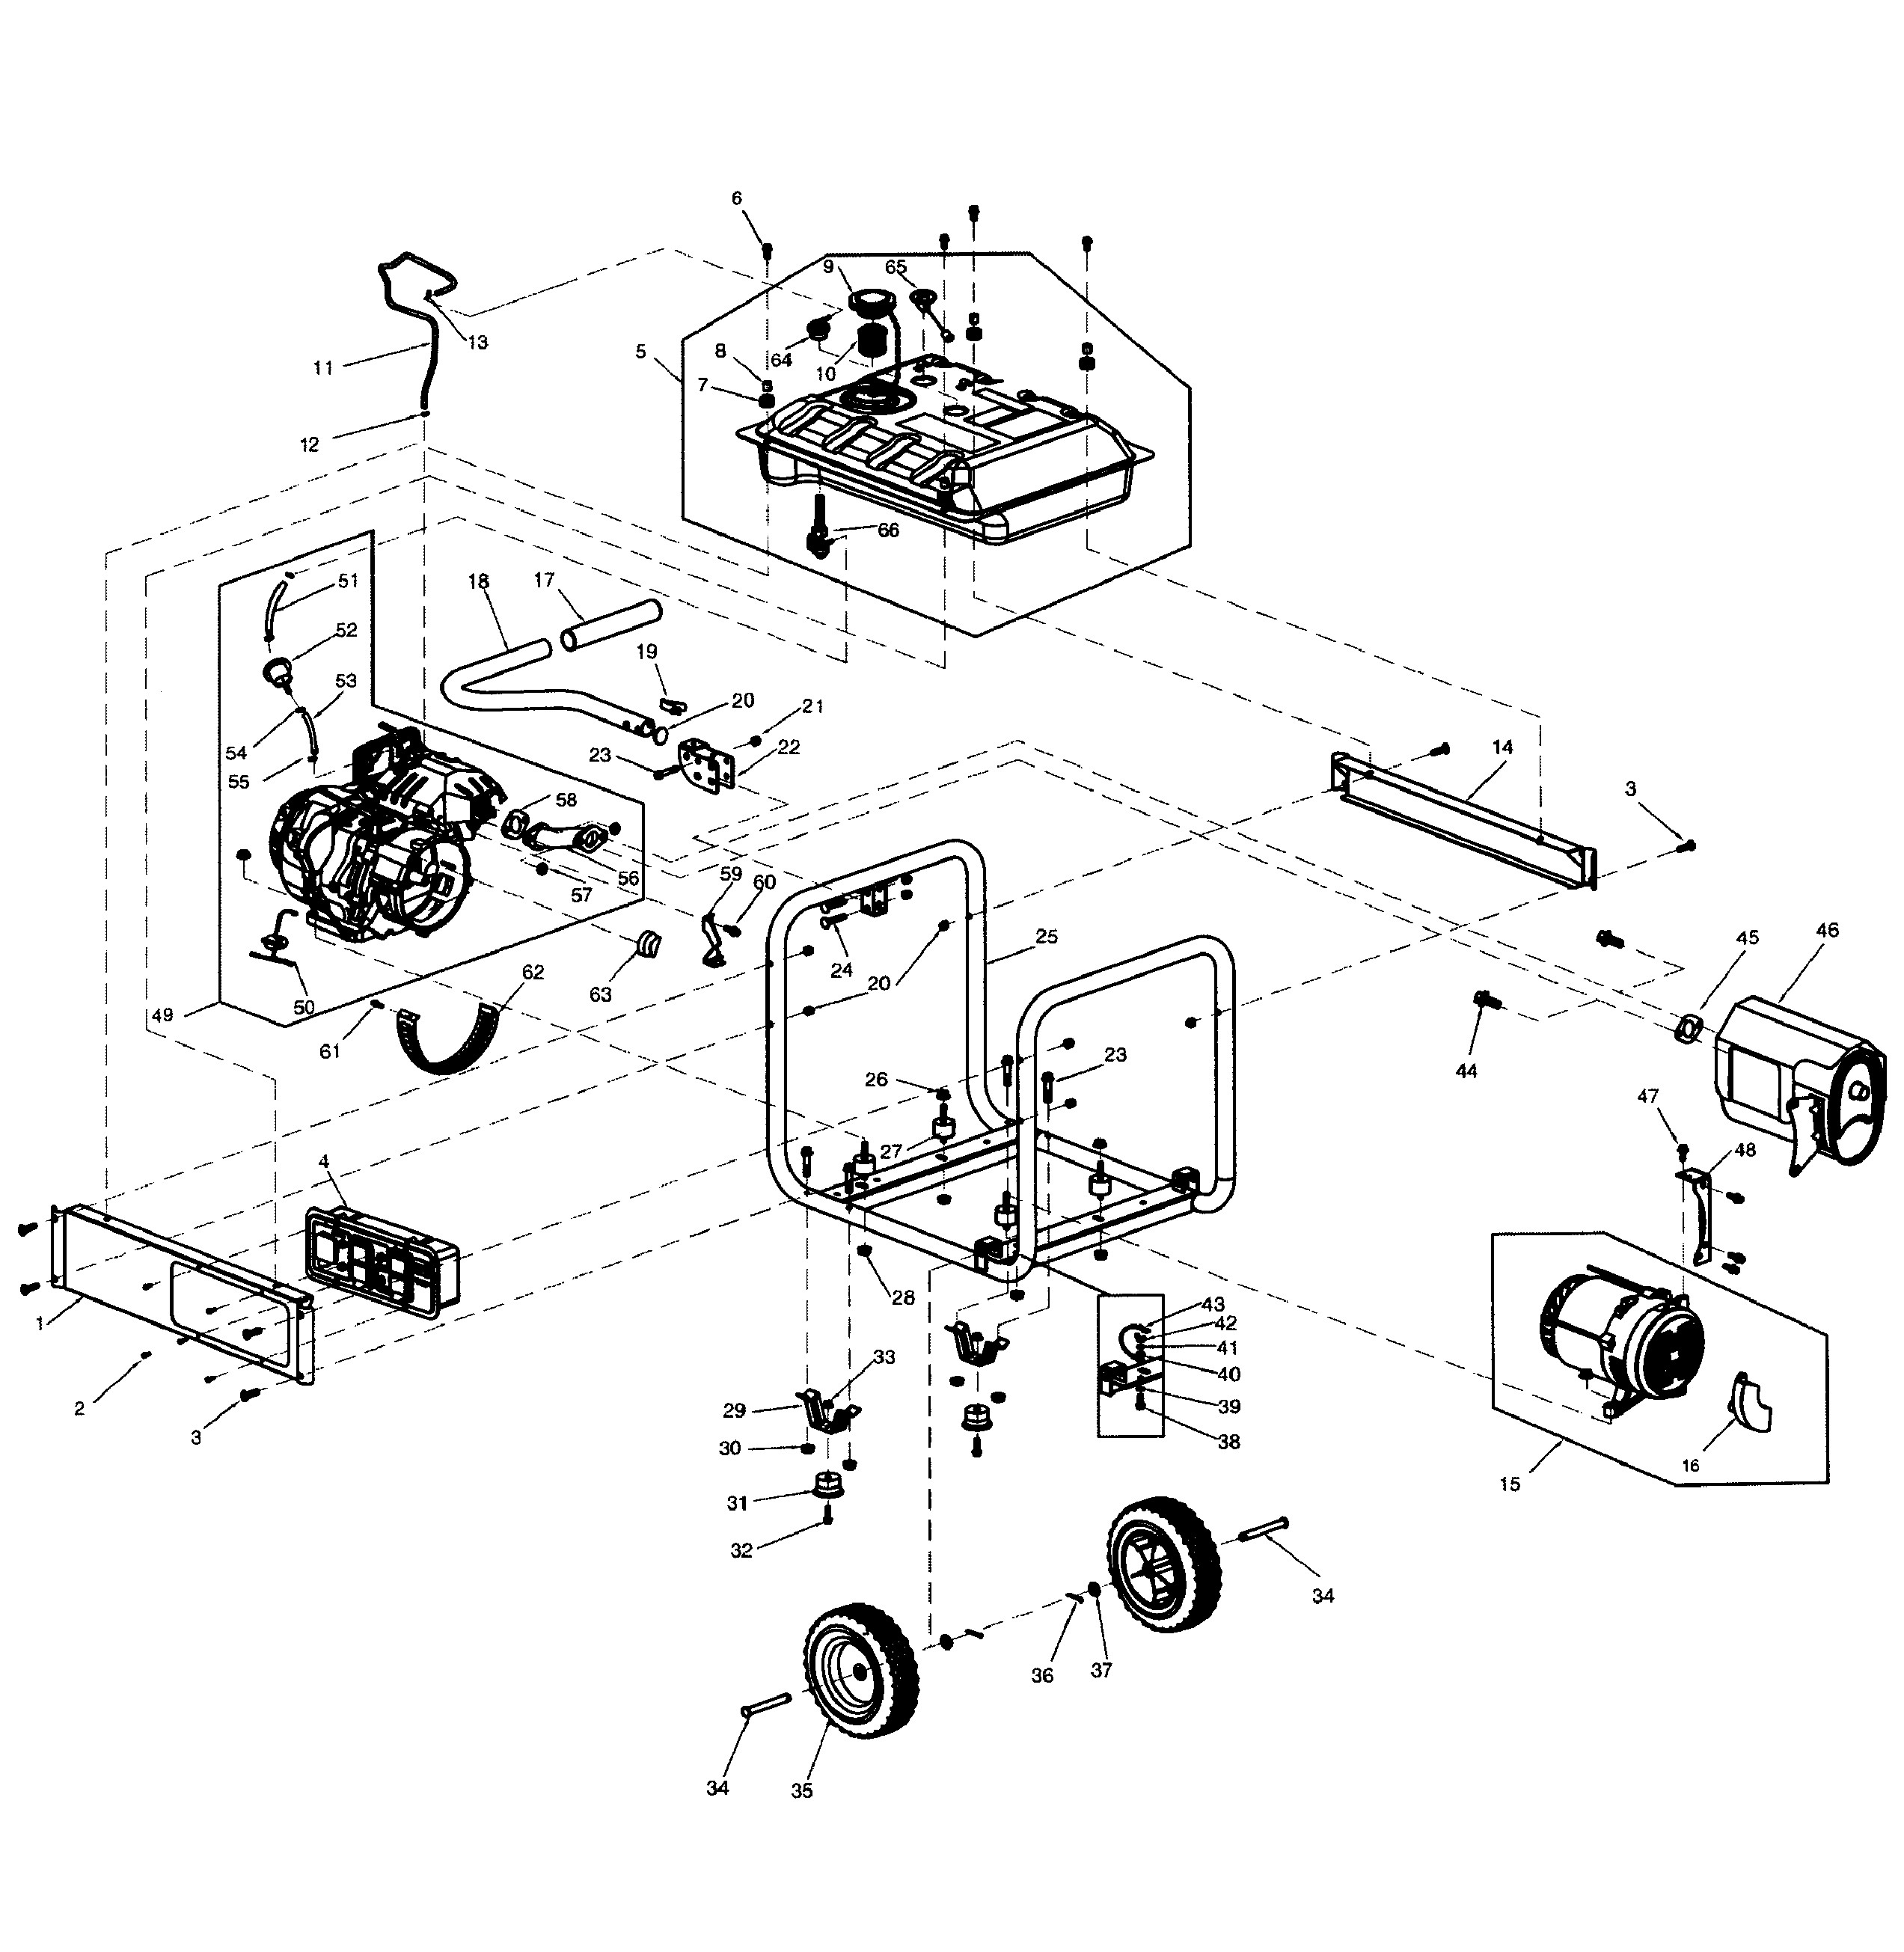 Onan Engine Parts Diagram Generac Model Gp5500 5939 6 Generator Genuine Parts Of Onan Engine Parts Diagram